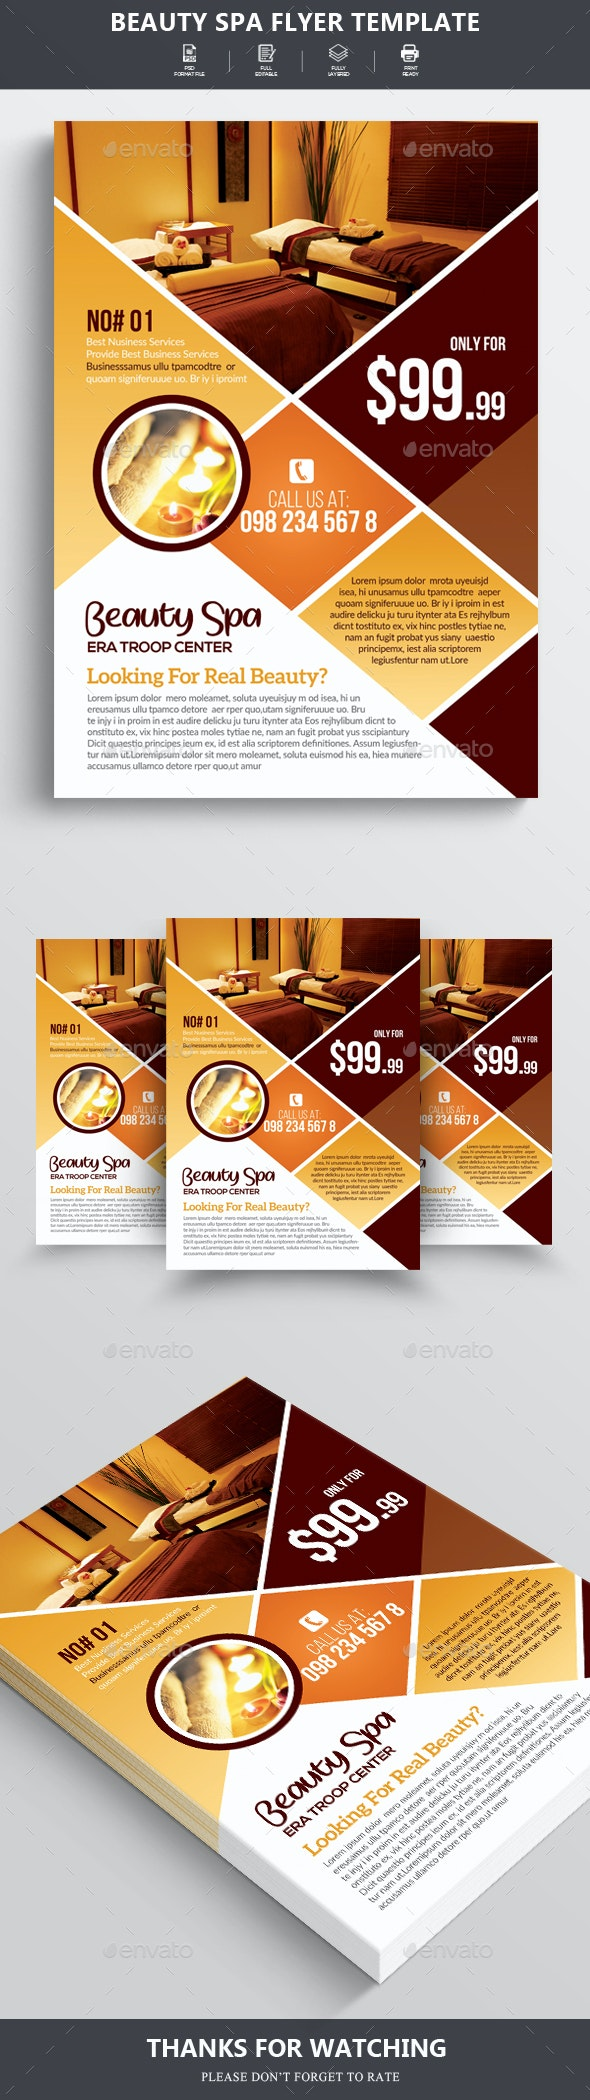 Beauty Spa & Massage Center Flyer - Flyers Print Templates